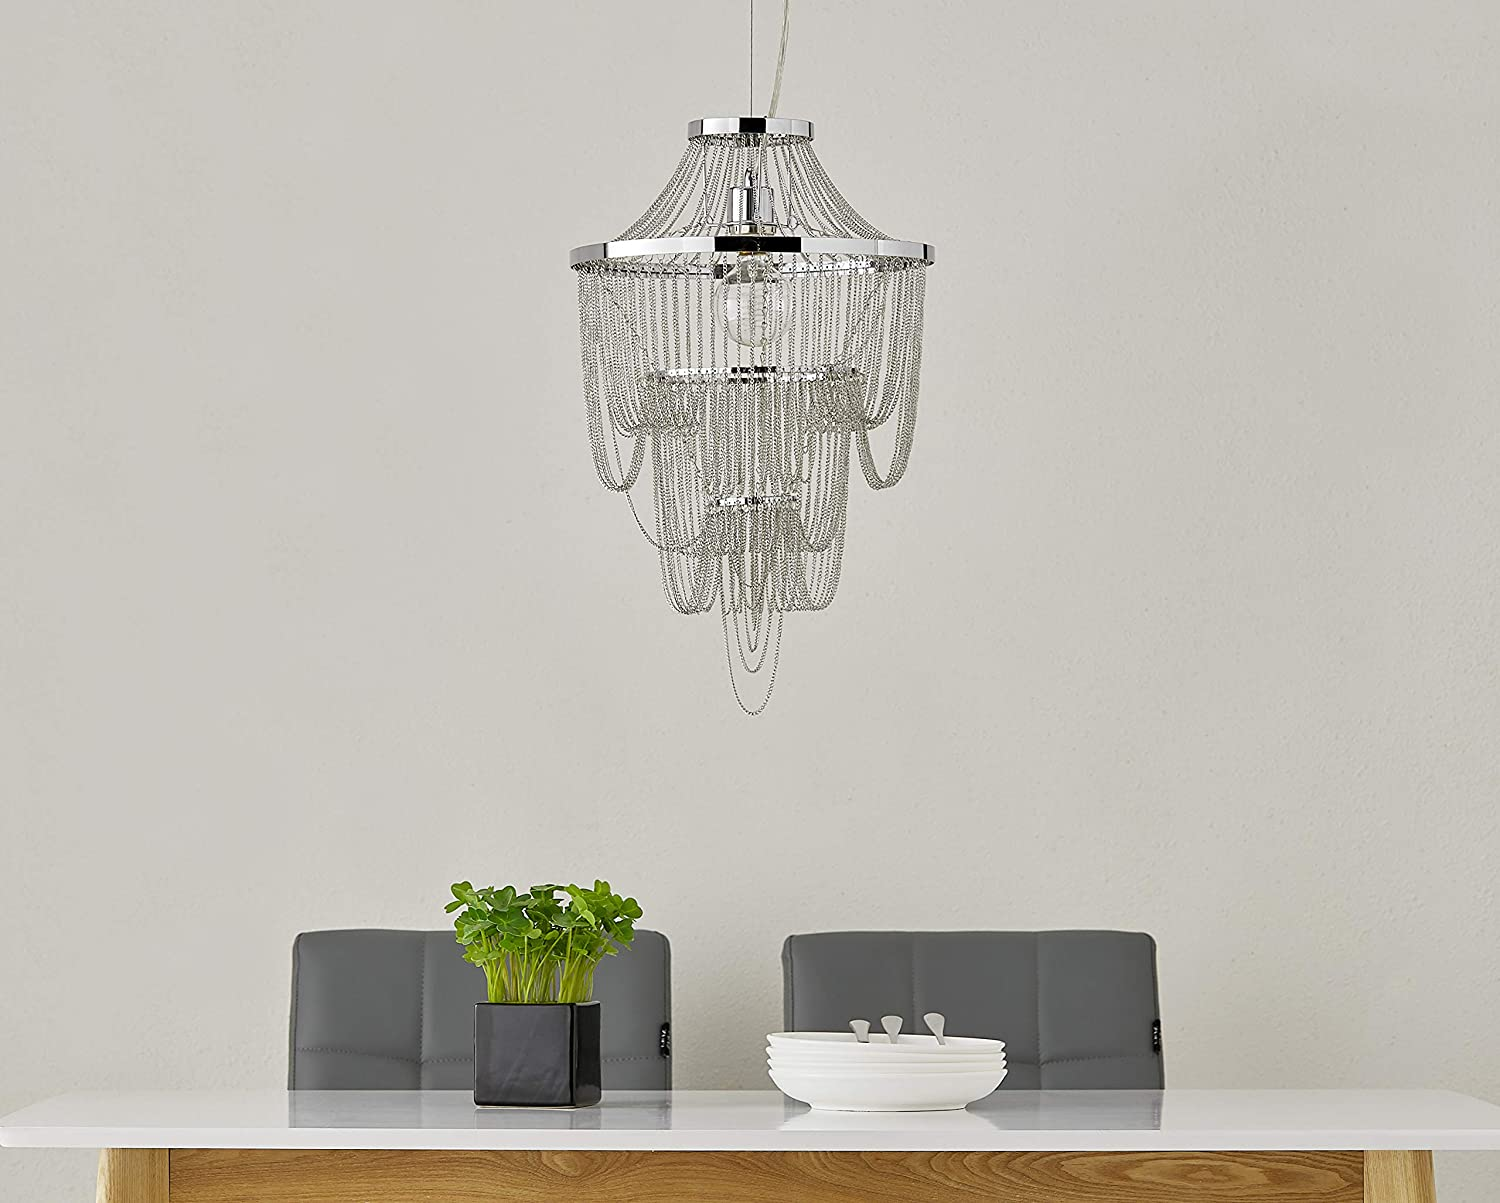 LeeZM Modern Chandeliers for Dining Rooms 3 Tiers Sparkling Iron Chain Pendant Lighting Entryway Foyer Hanging Lamp Ceiling Lighting Fixture Hallway Farmhouse Chandelier for Living Room Bedrooms